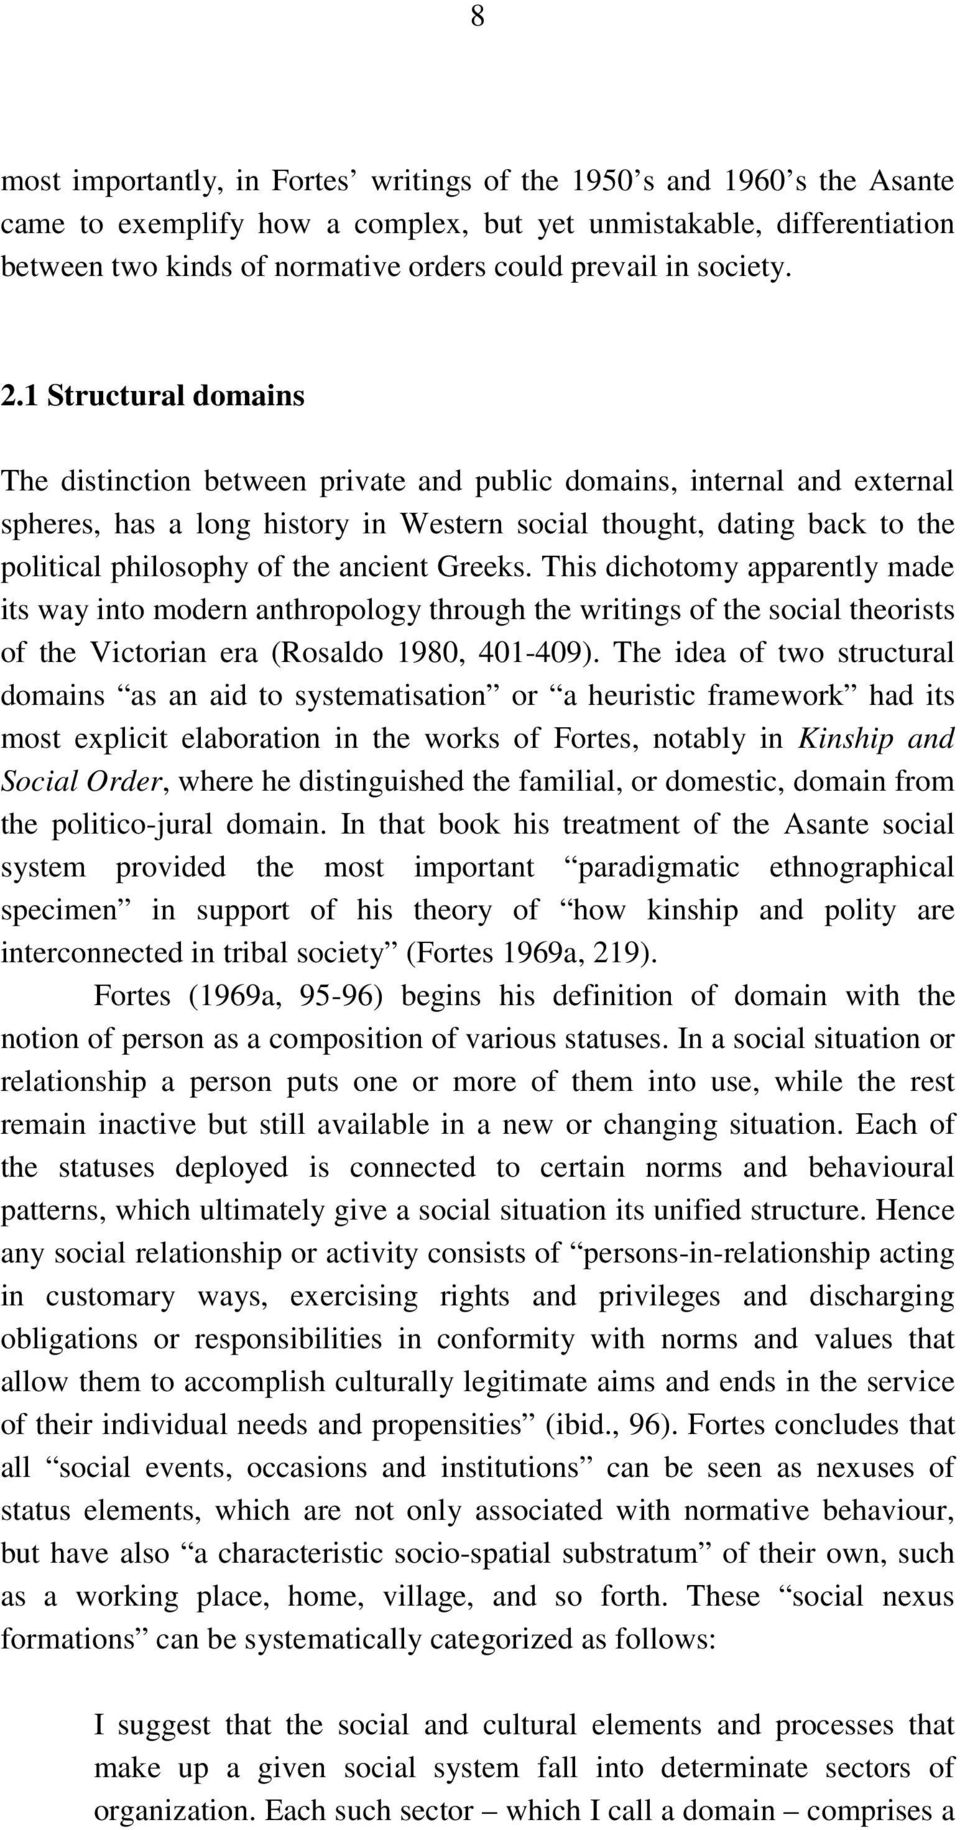 1 Structural domains The distinction between private and public domains, internal and external spheres, has a long history in Western social thought, dating back to the political philosophy of the